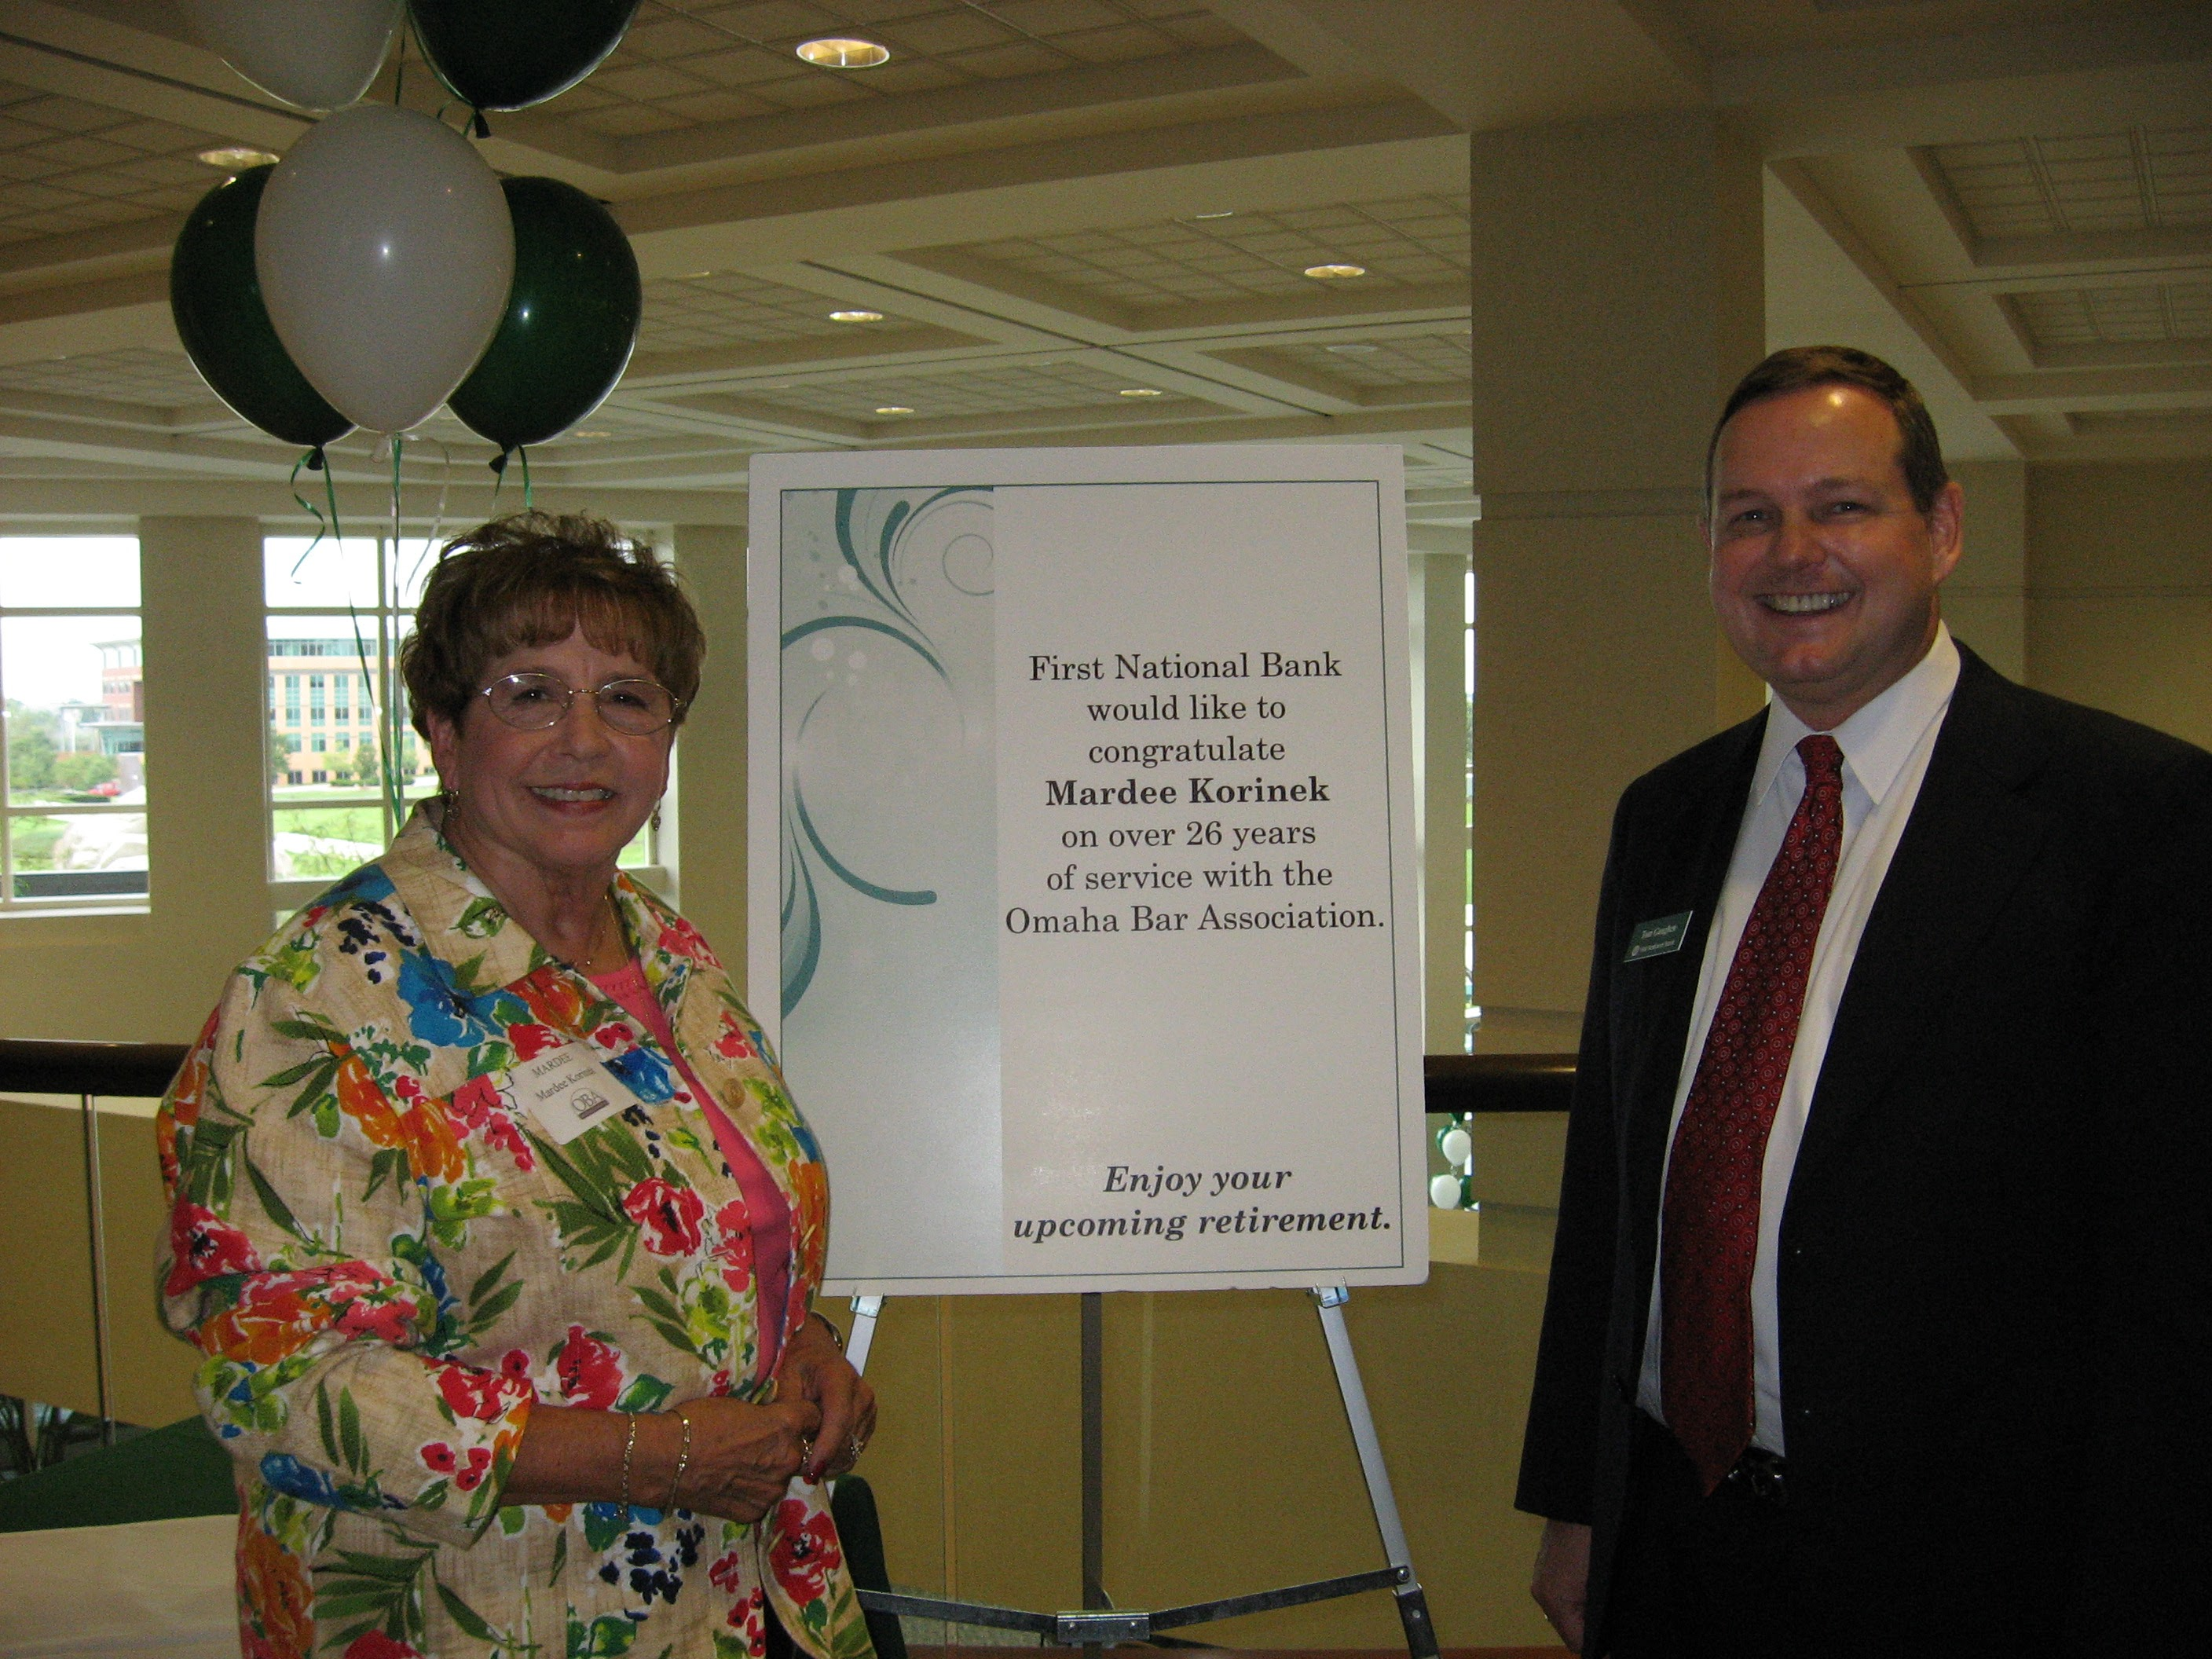 Mardee Korinek, who became Mardee Johnston later in life, celebrates her retirement in 2006 at the Omaha Bar Association Fall Kickoff BBQ with Tom Gaughen of First National Bank. (OBA)